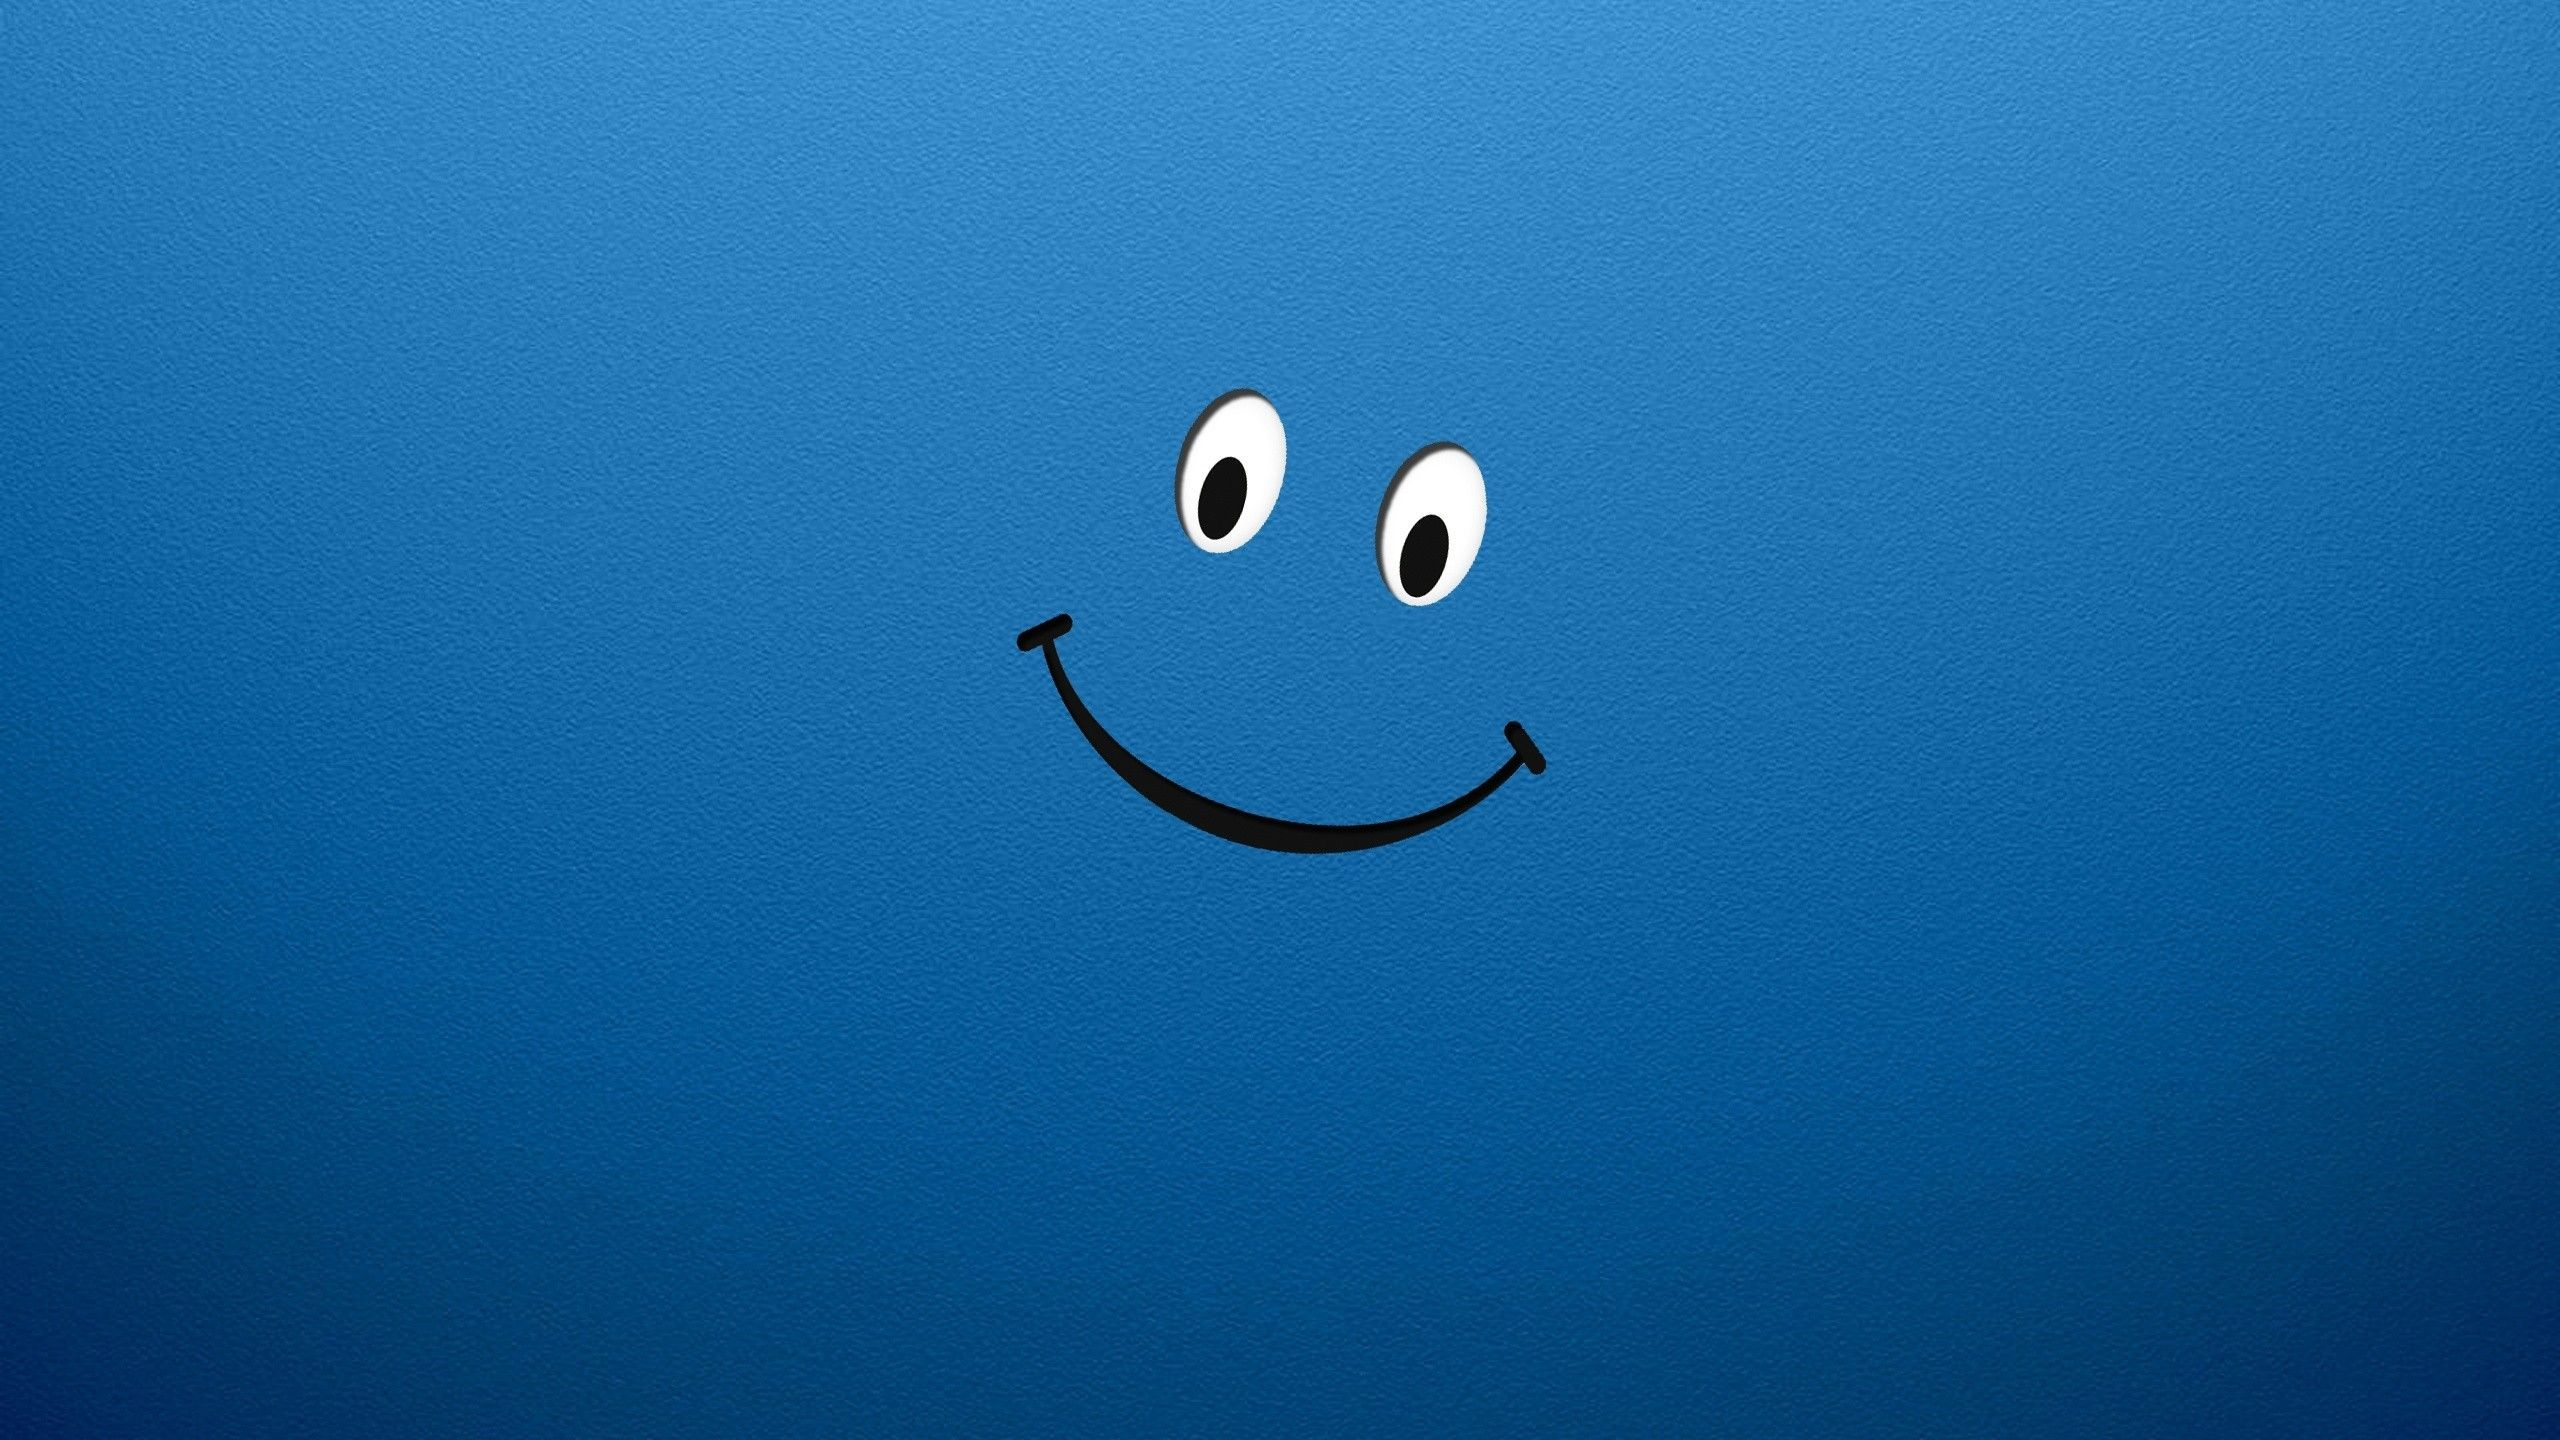 Smiley Face Live Wallpaper Android Apps on Google Play